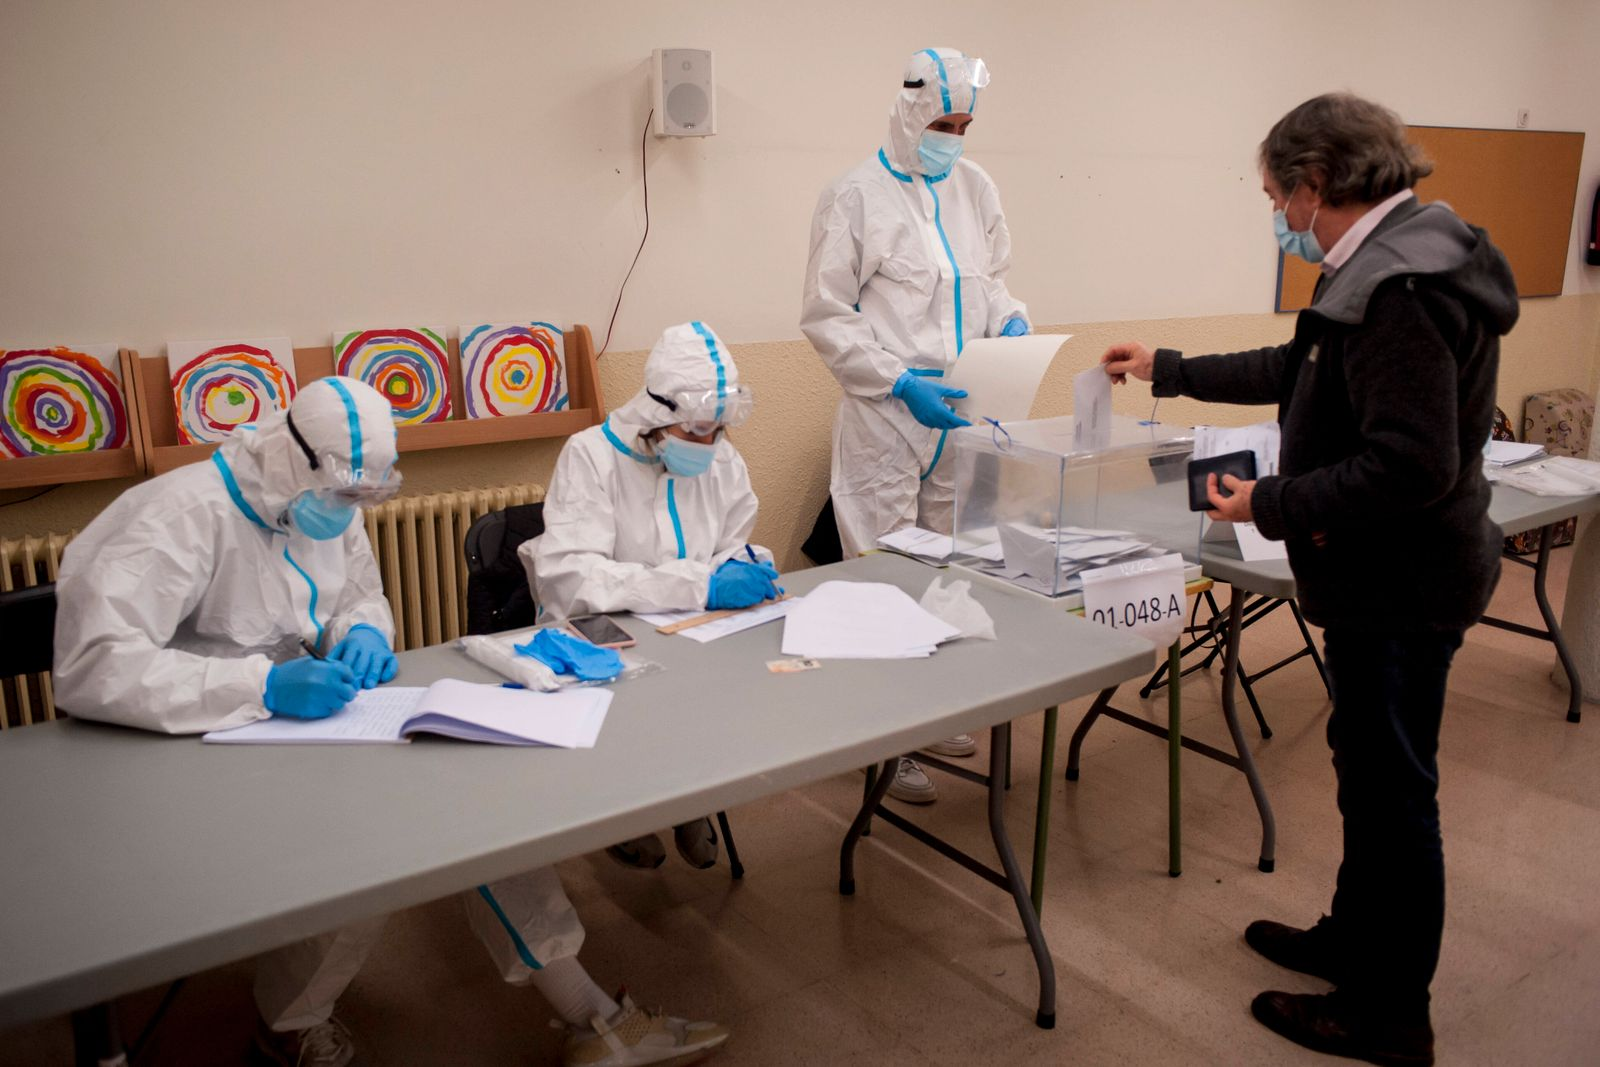 February 14, 2021, Barcelona, Catalonia, Spain: A man casts his vote in a polling station of Barcelona with workers wea